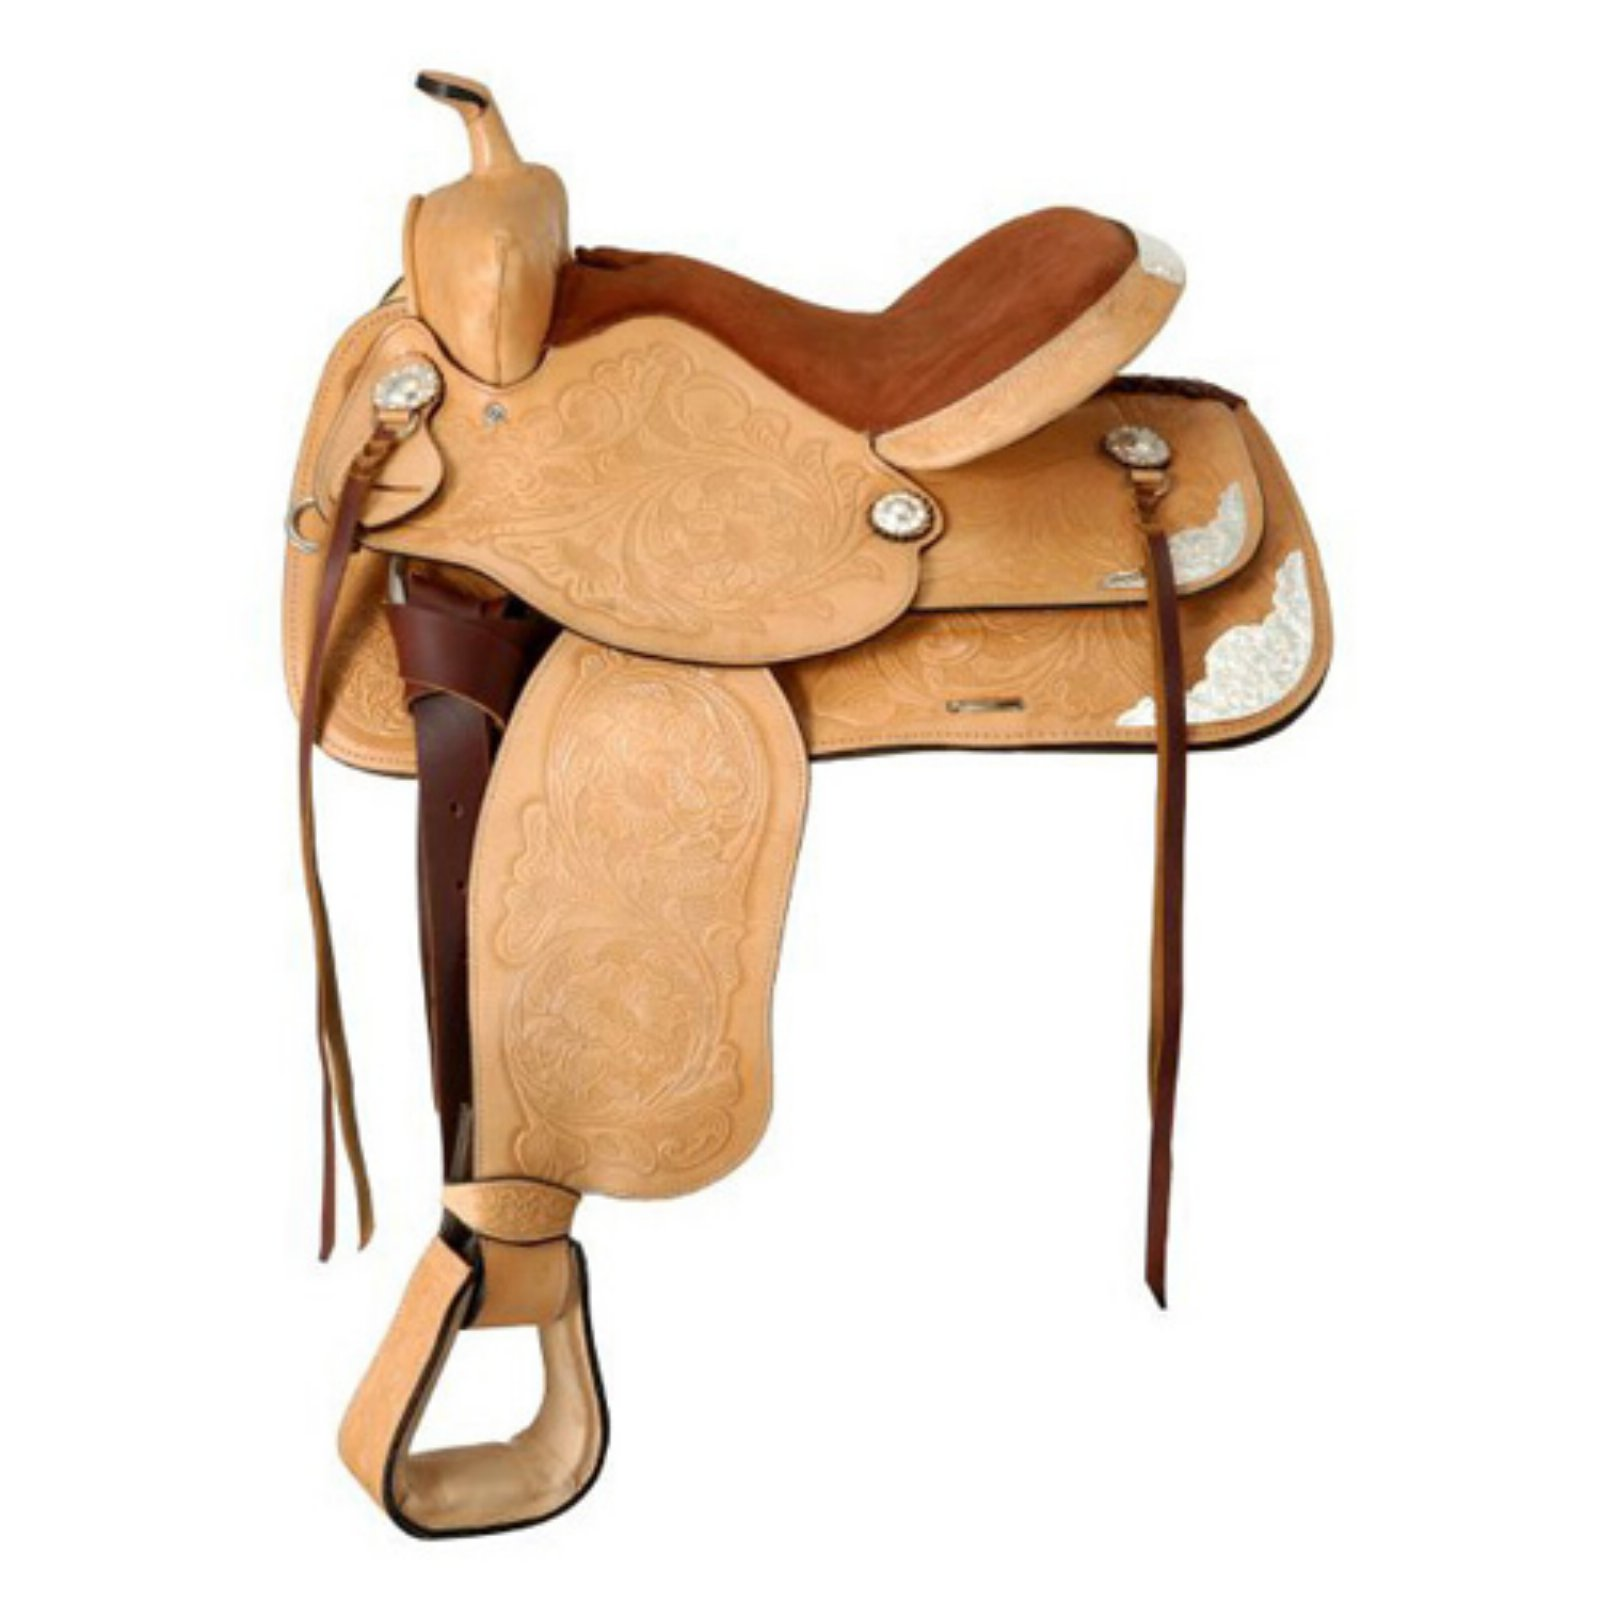 Component Sourcing King Series Show King II Saddle with S...